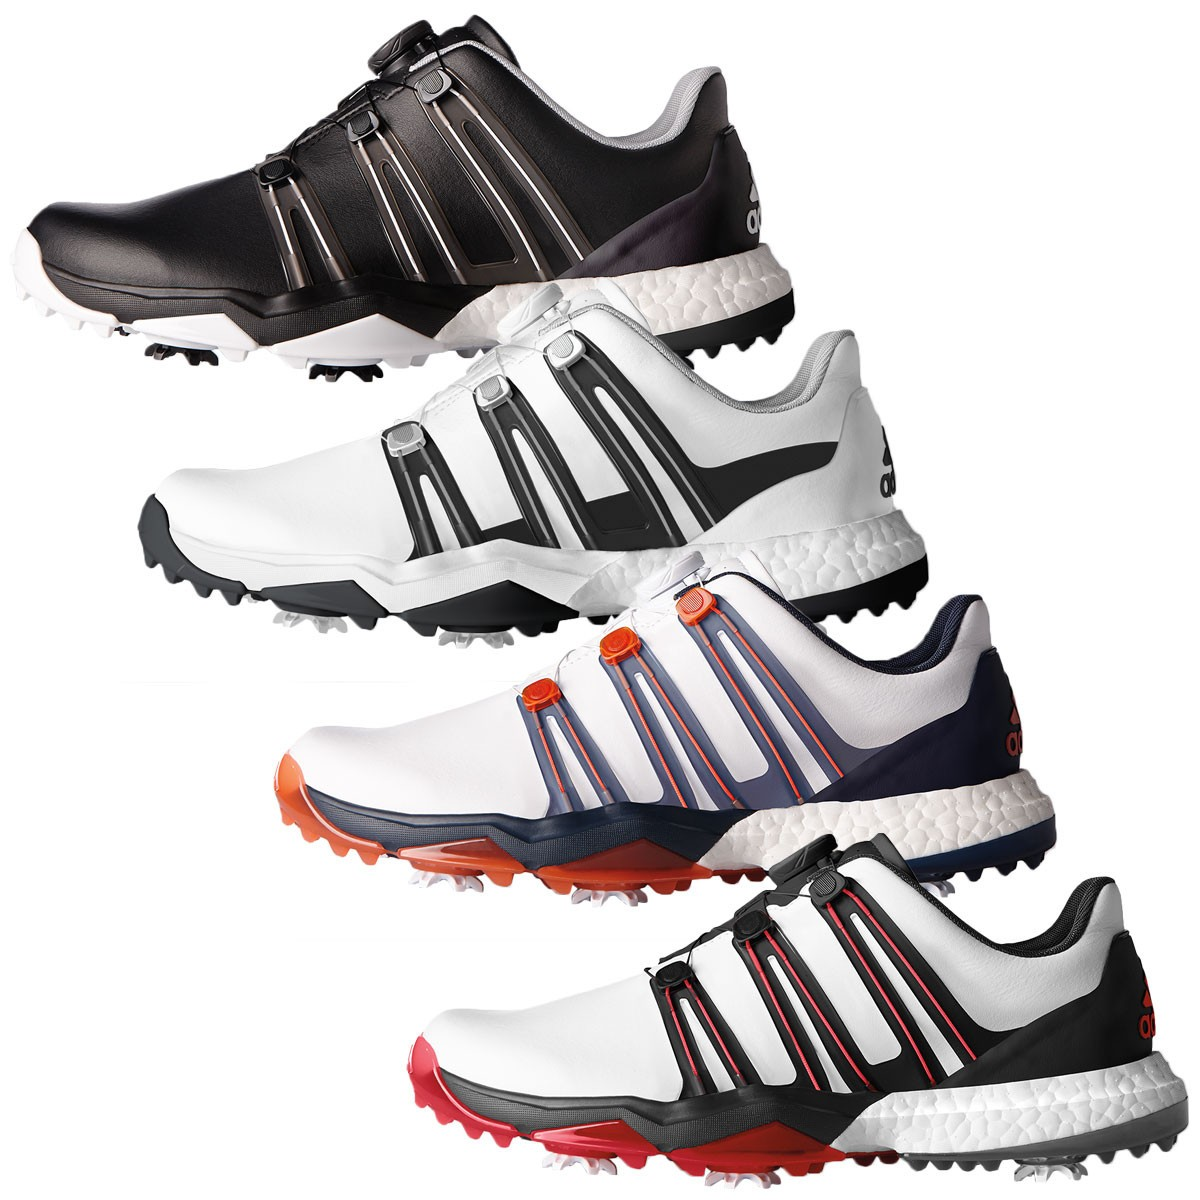 Adidas Powerband Boa Boost Golf Shoes Review